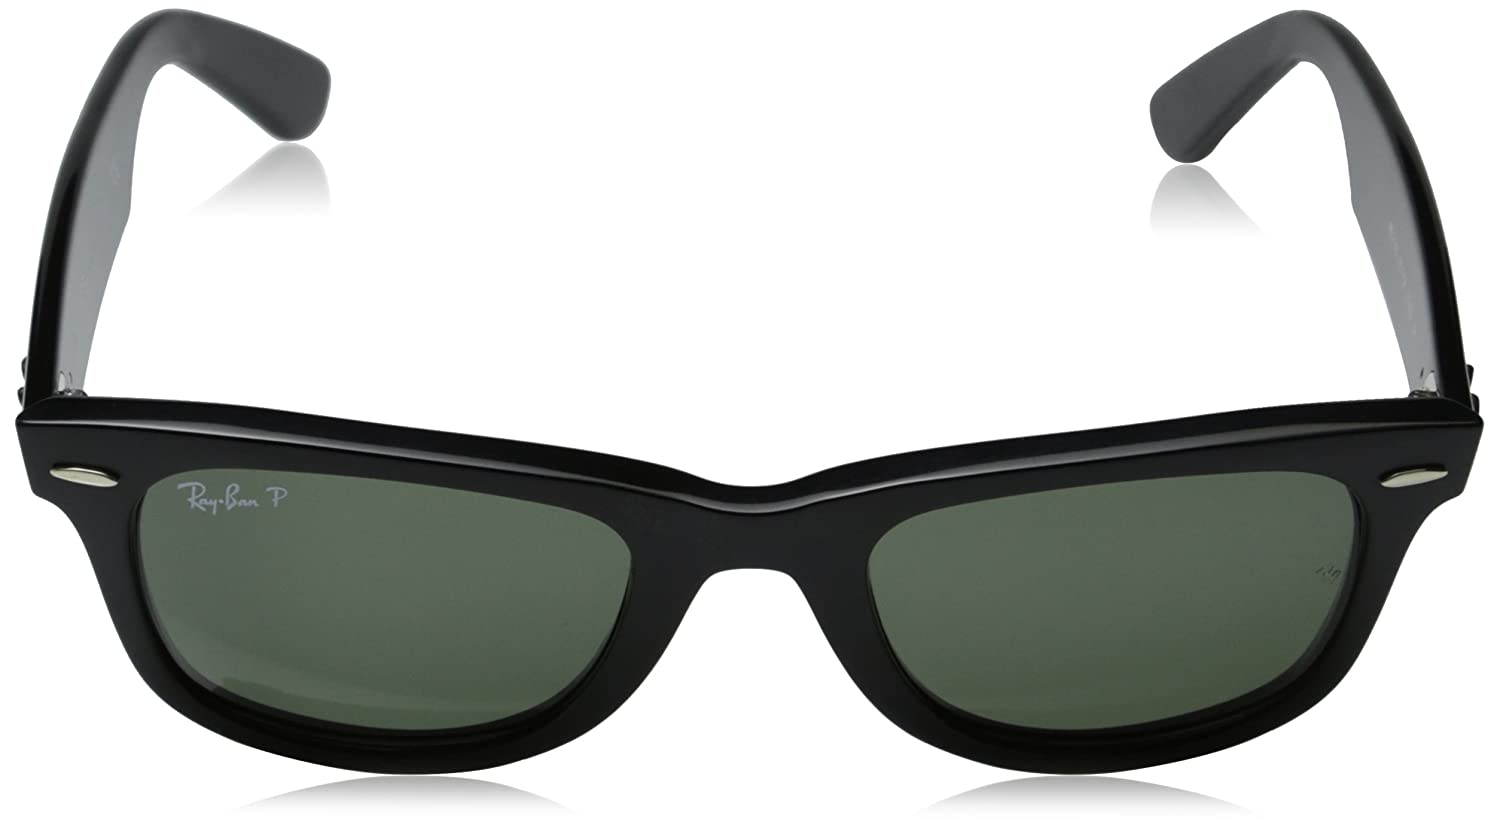 ed675dea30b Amazon.com  Ray-Ban Wayfarer - Black Frame Crystal Green Polarized Lenses